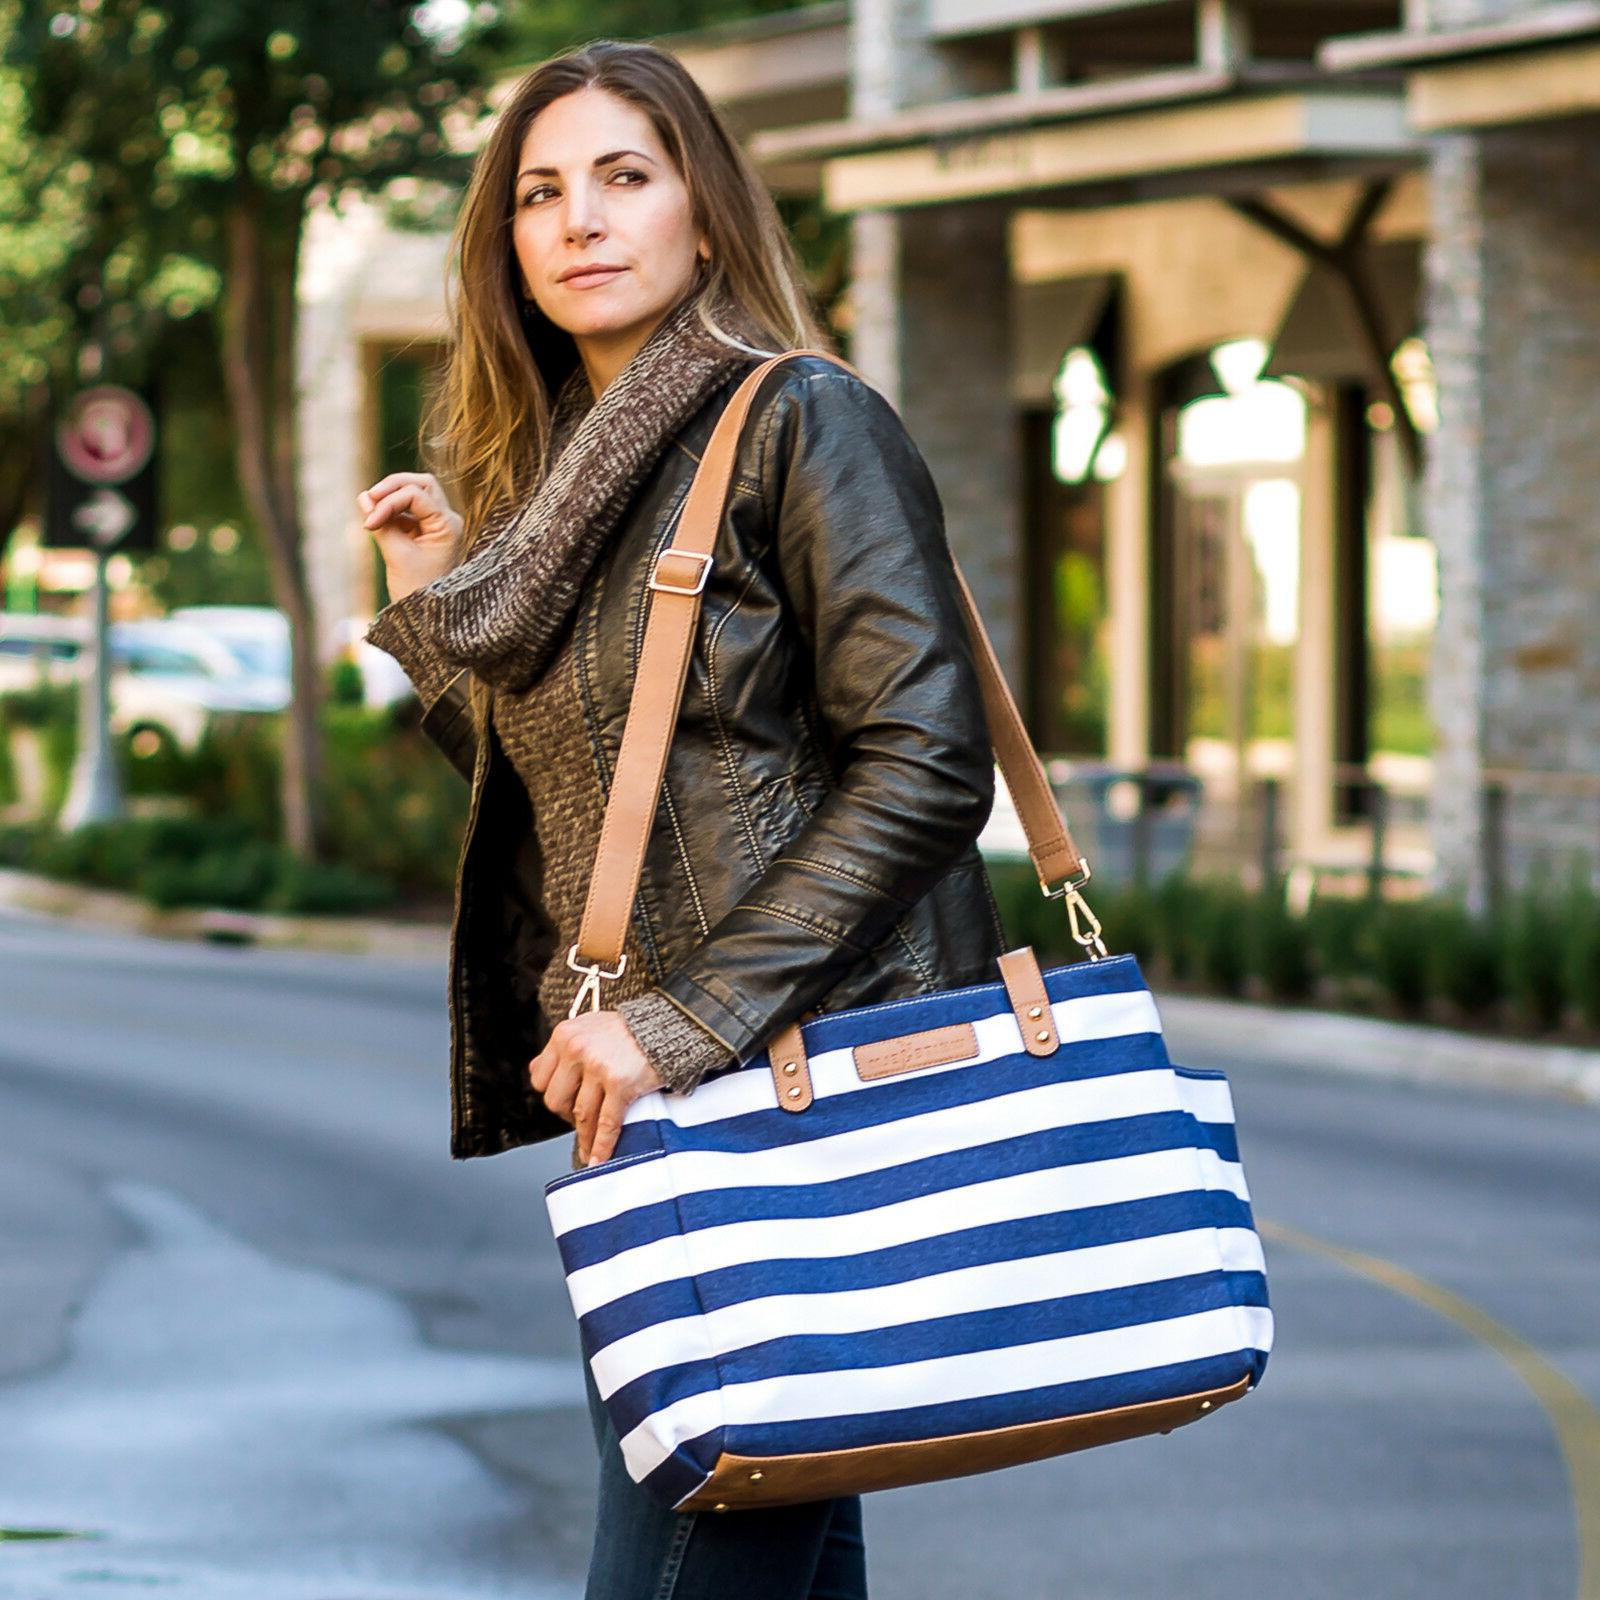 The Aquila by White Navy Diaper Bag